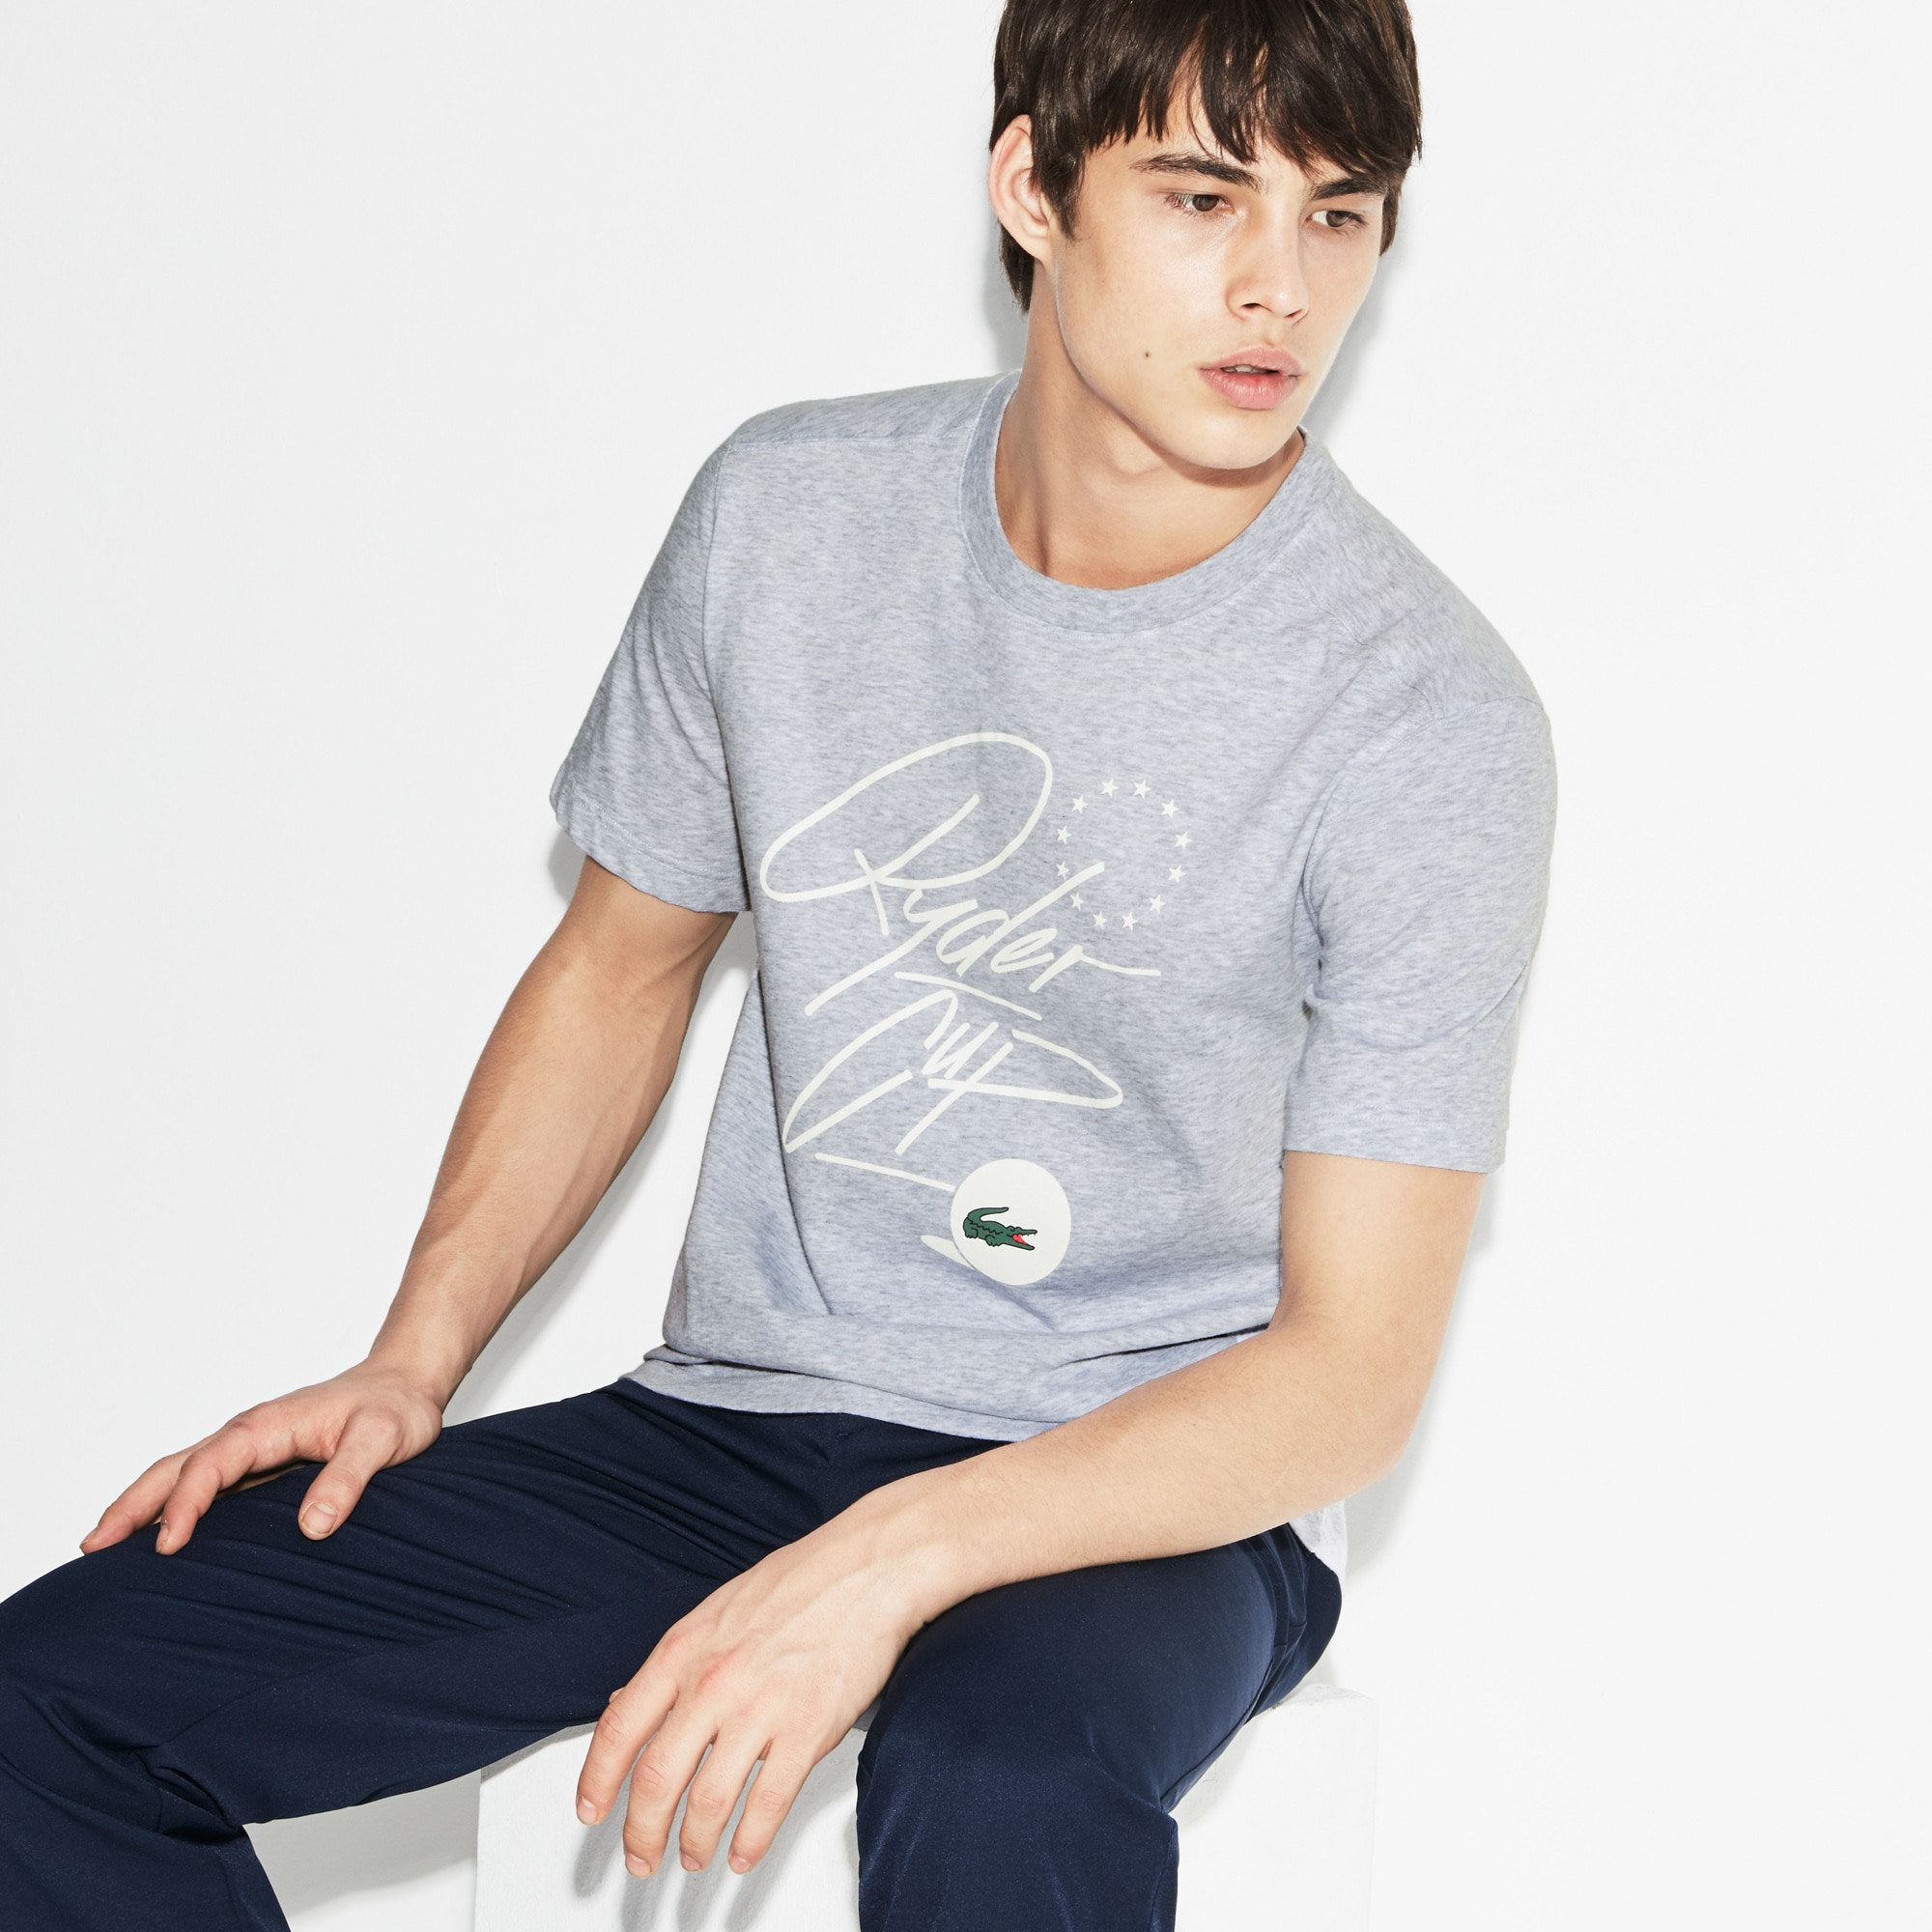 Camiseta Lacoste SPORT Ryder Cup Edition